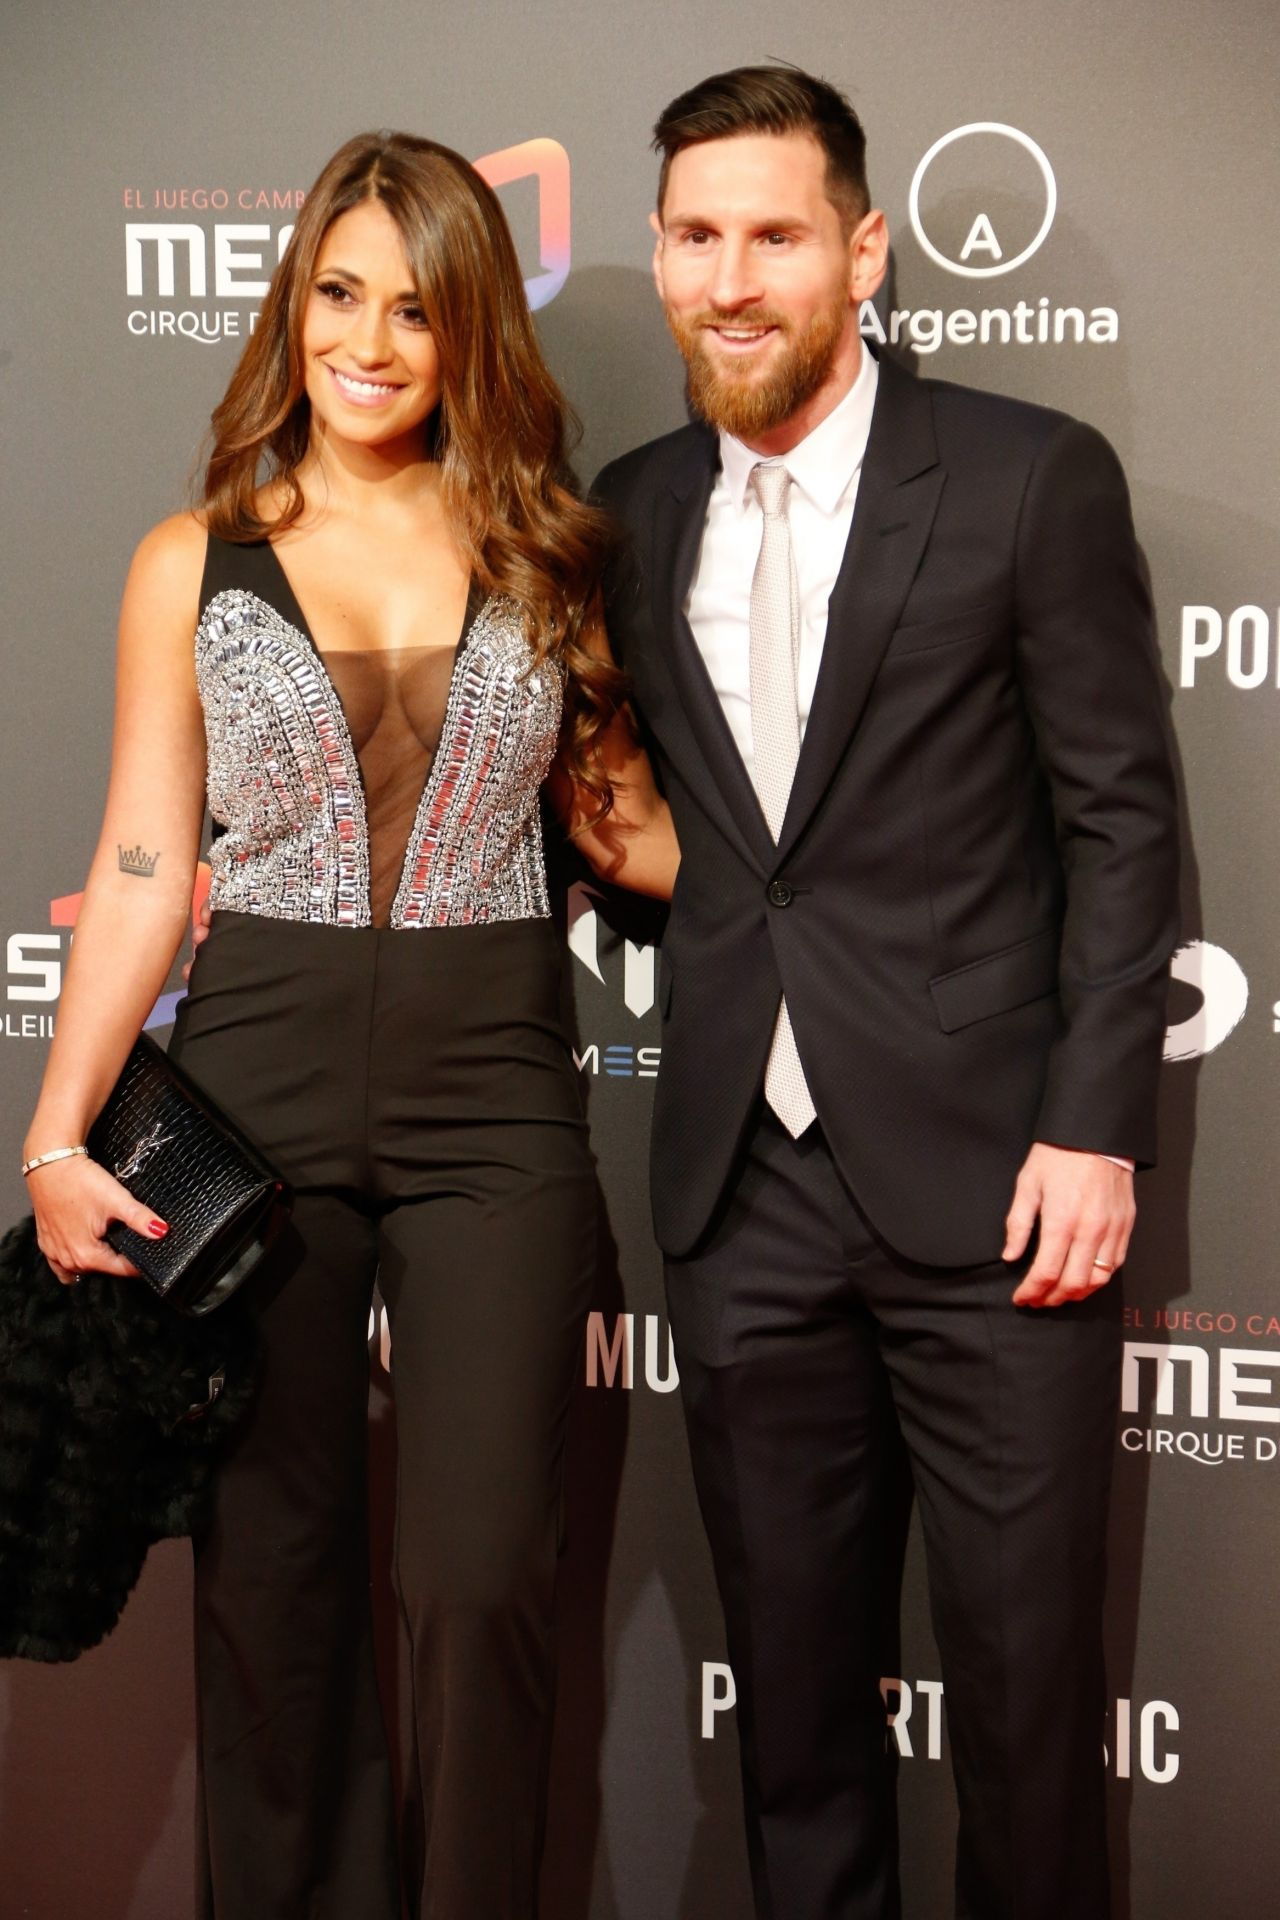 antonella-roccuzzo-and-lionel-messi-presentation-of-cirque-du-soleil-in-barcelona-01-31-2019-8